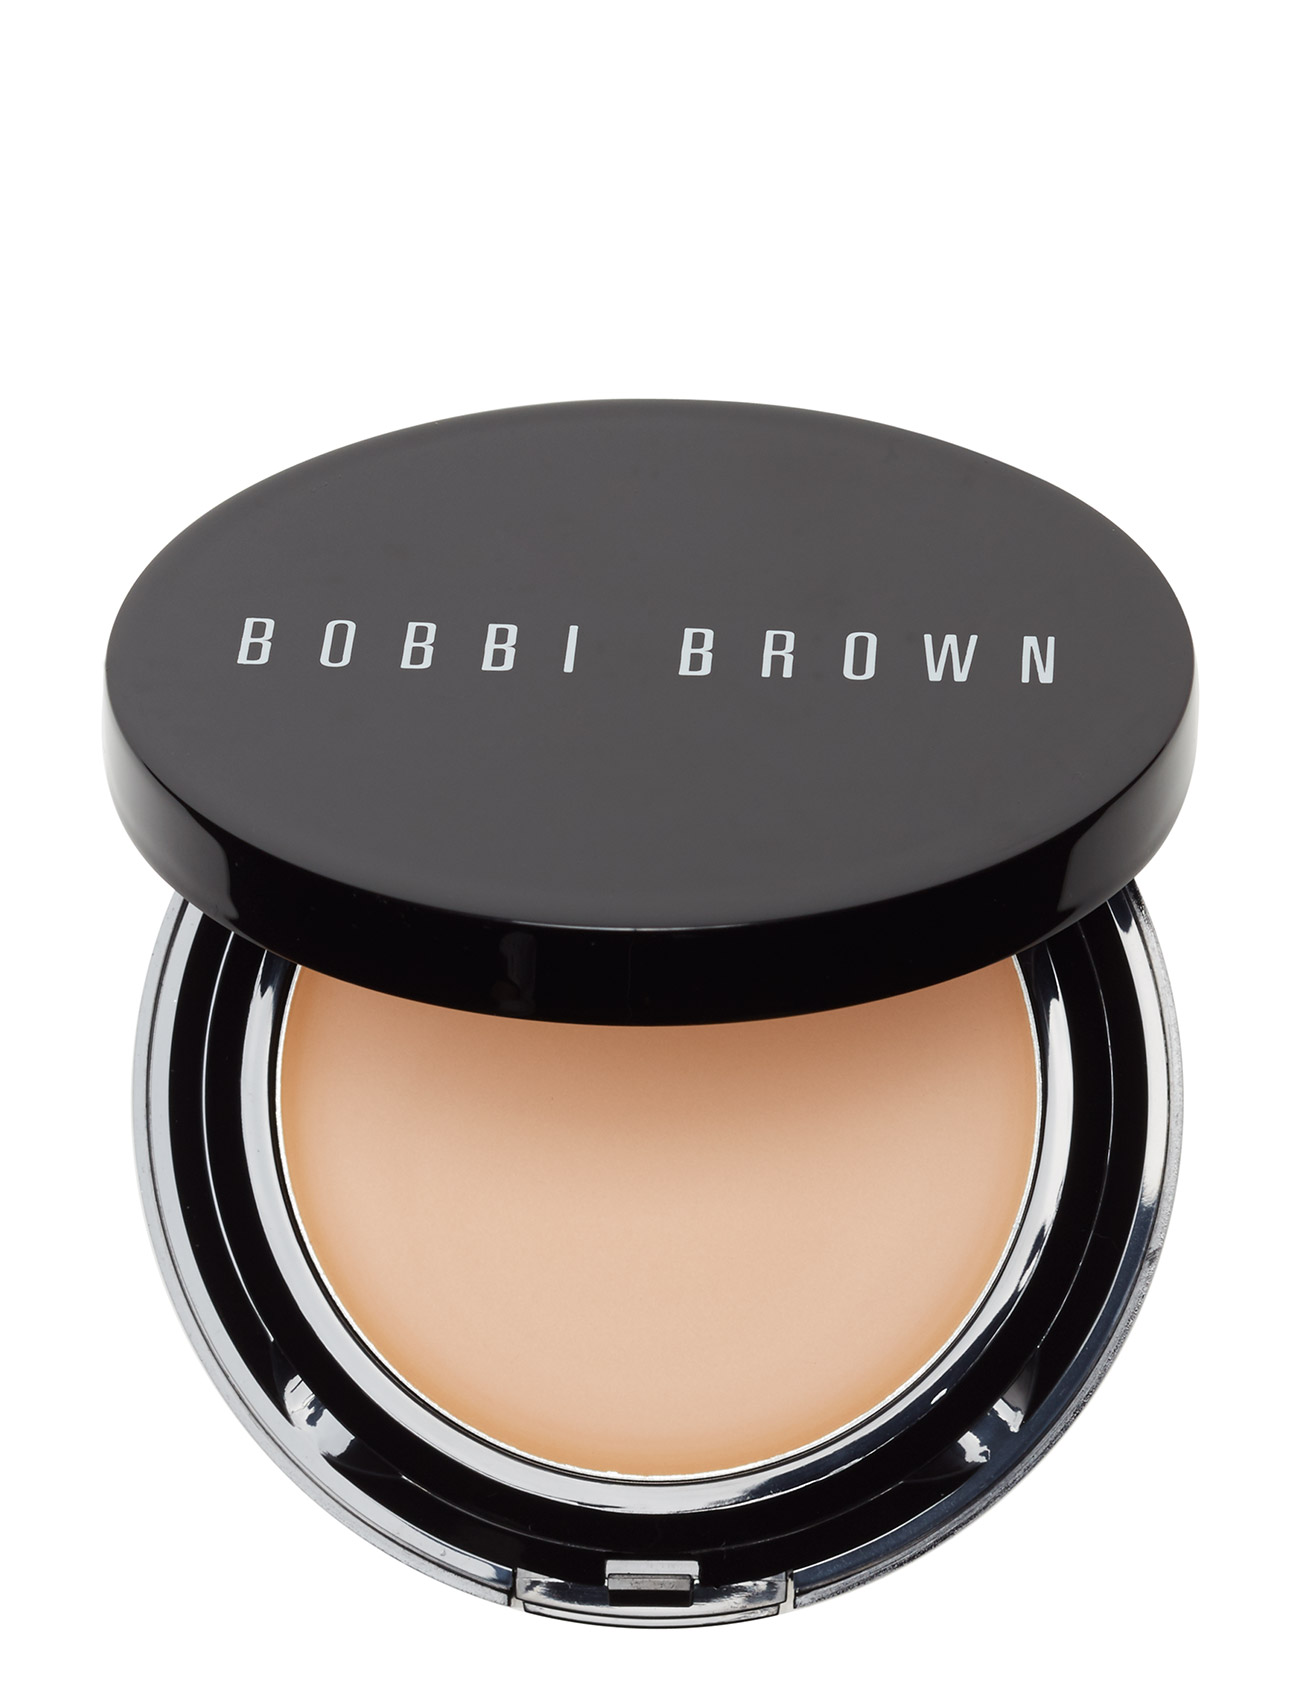 Long-wear even finish compact foundation, beige 3 fra bobbi brown på boozt.com dk